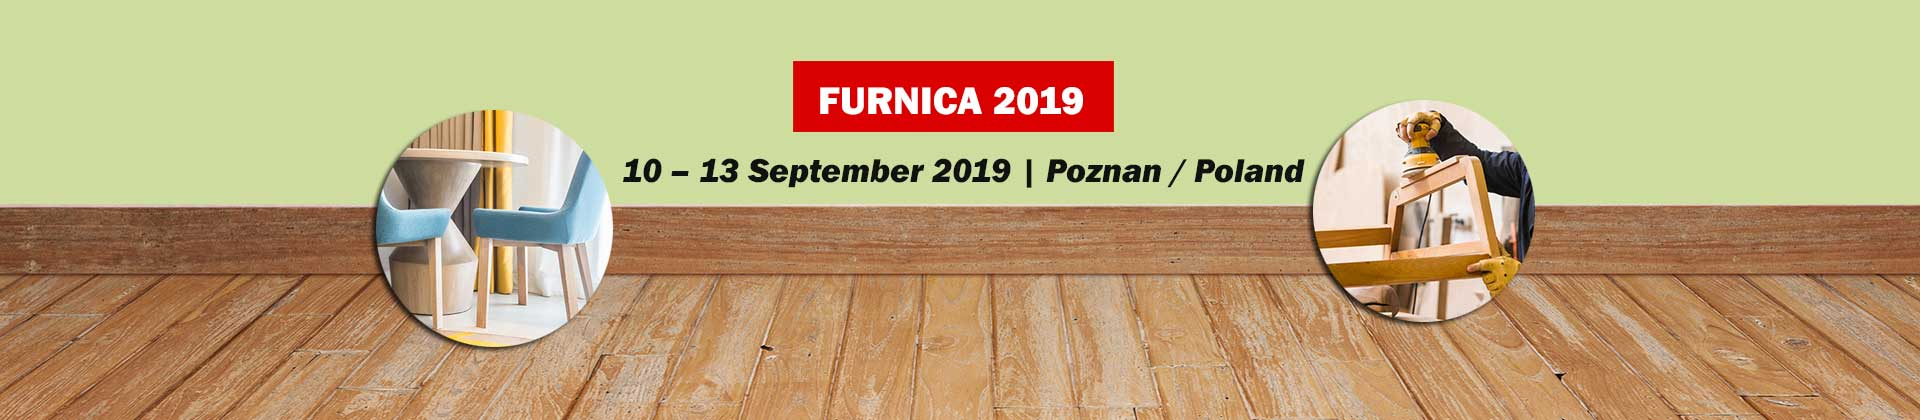 FURNICA2019-ENG